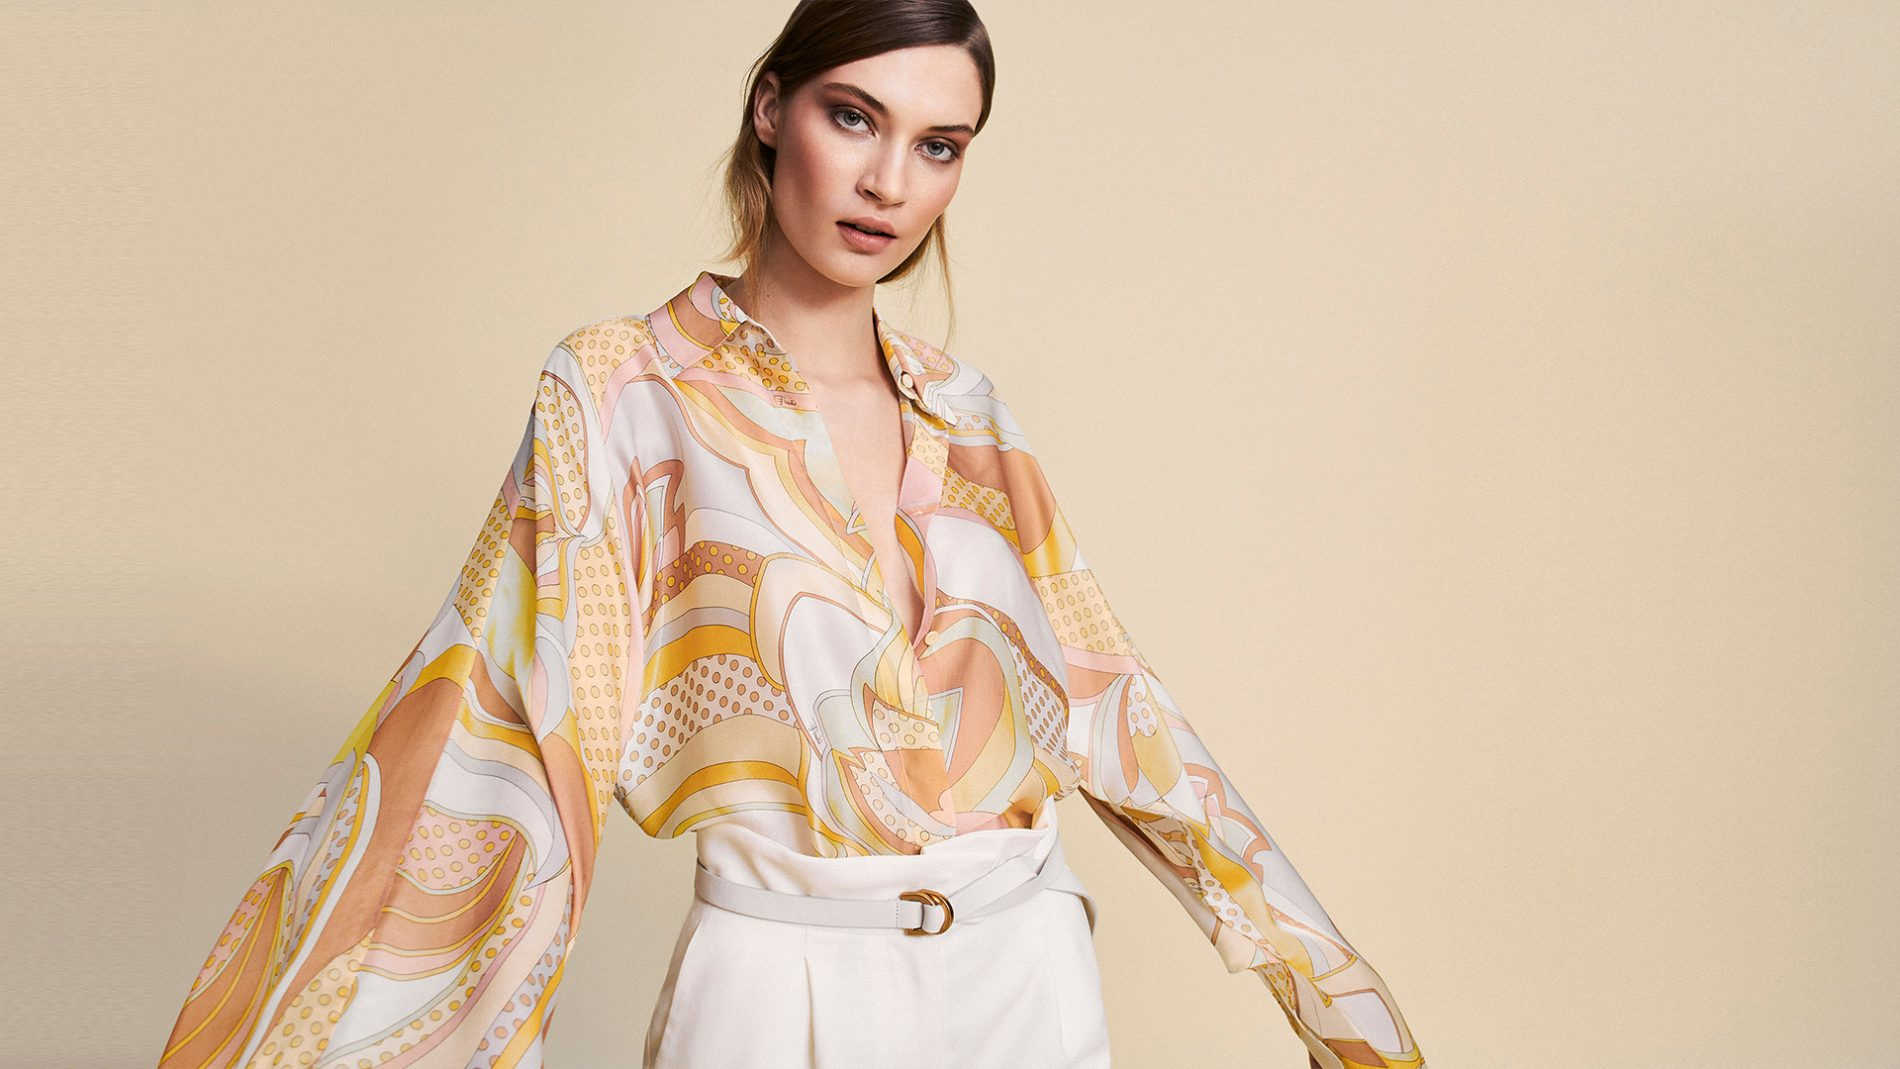 El Corte Inglés Ready-To-Wear Emilio Pucci Carven